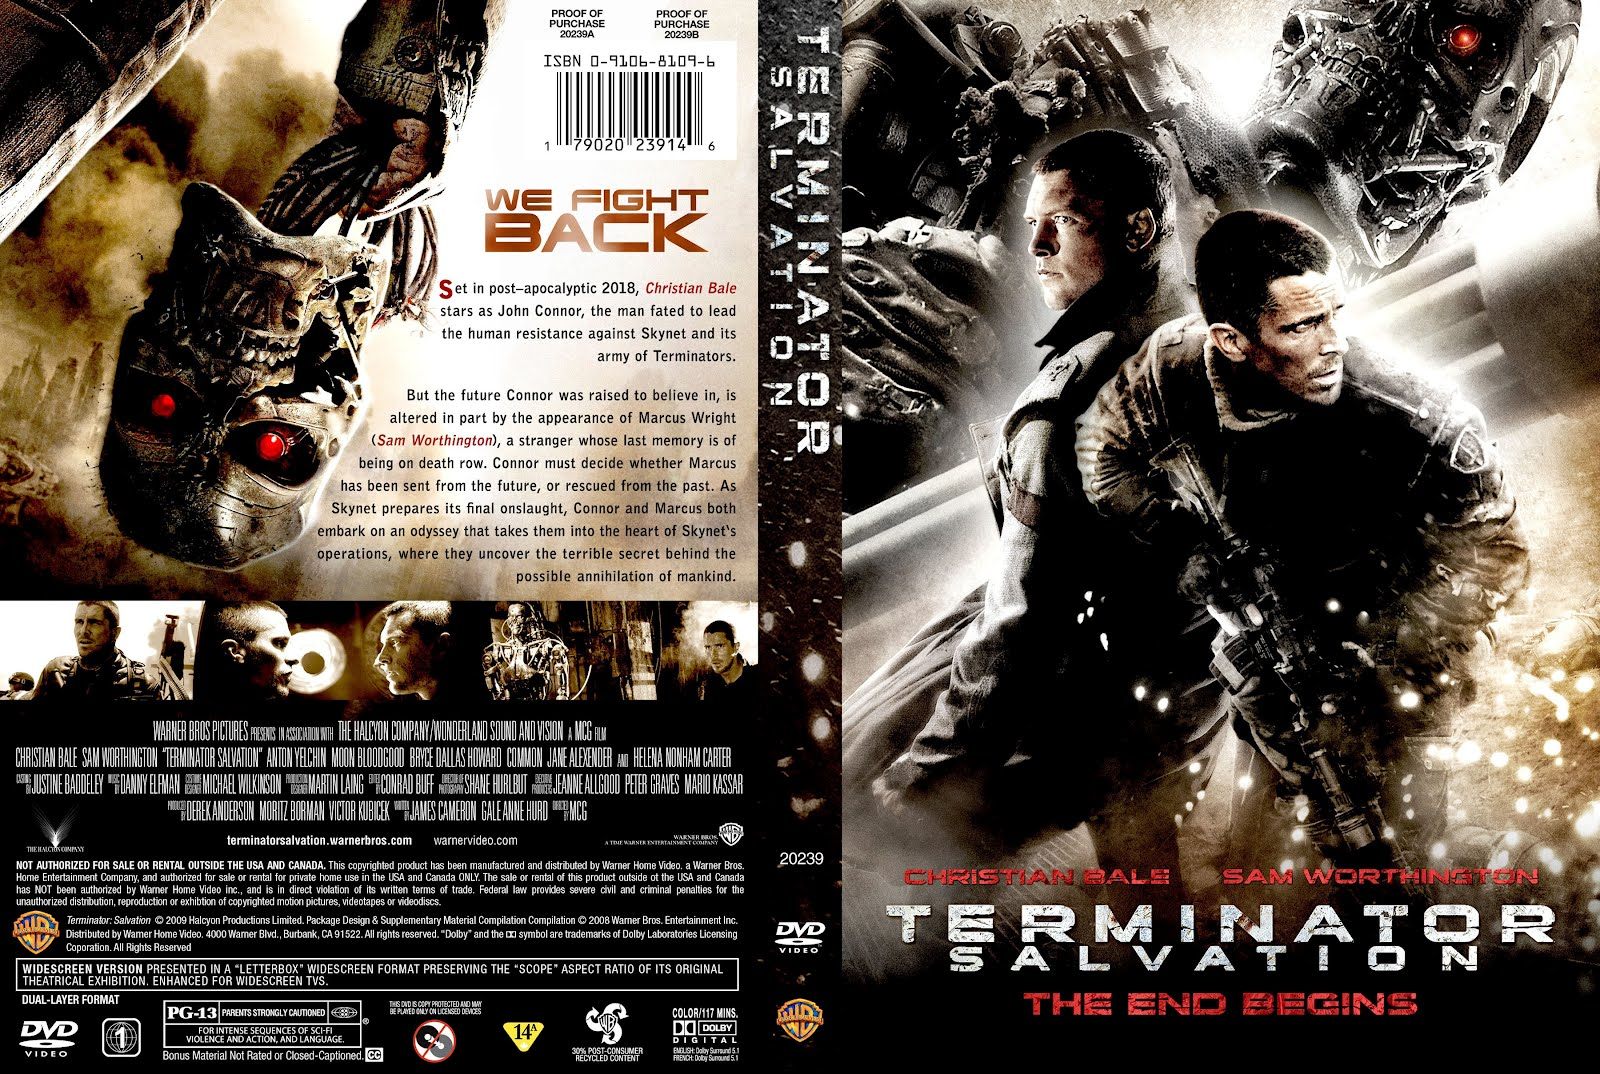 Fight christian terminator salvation 2009 movie posters and blu click thecheapjerseys Image collections